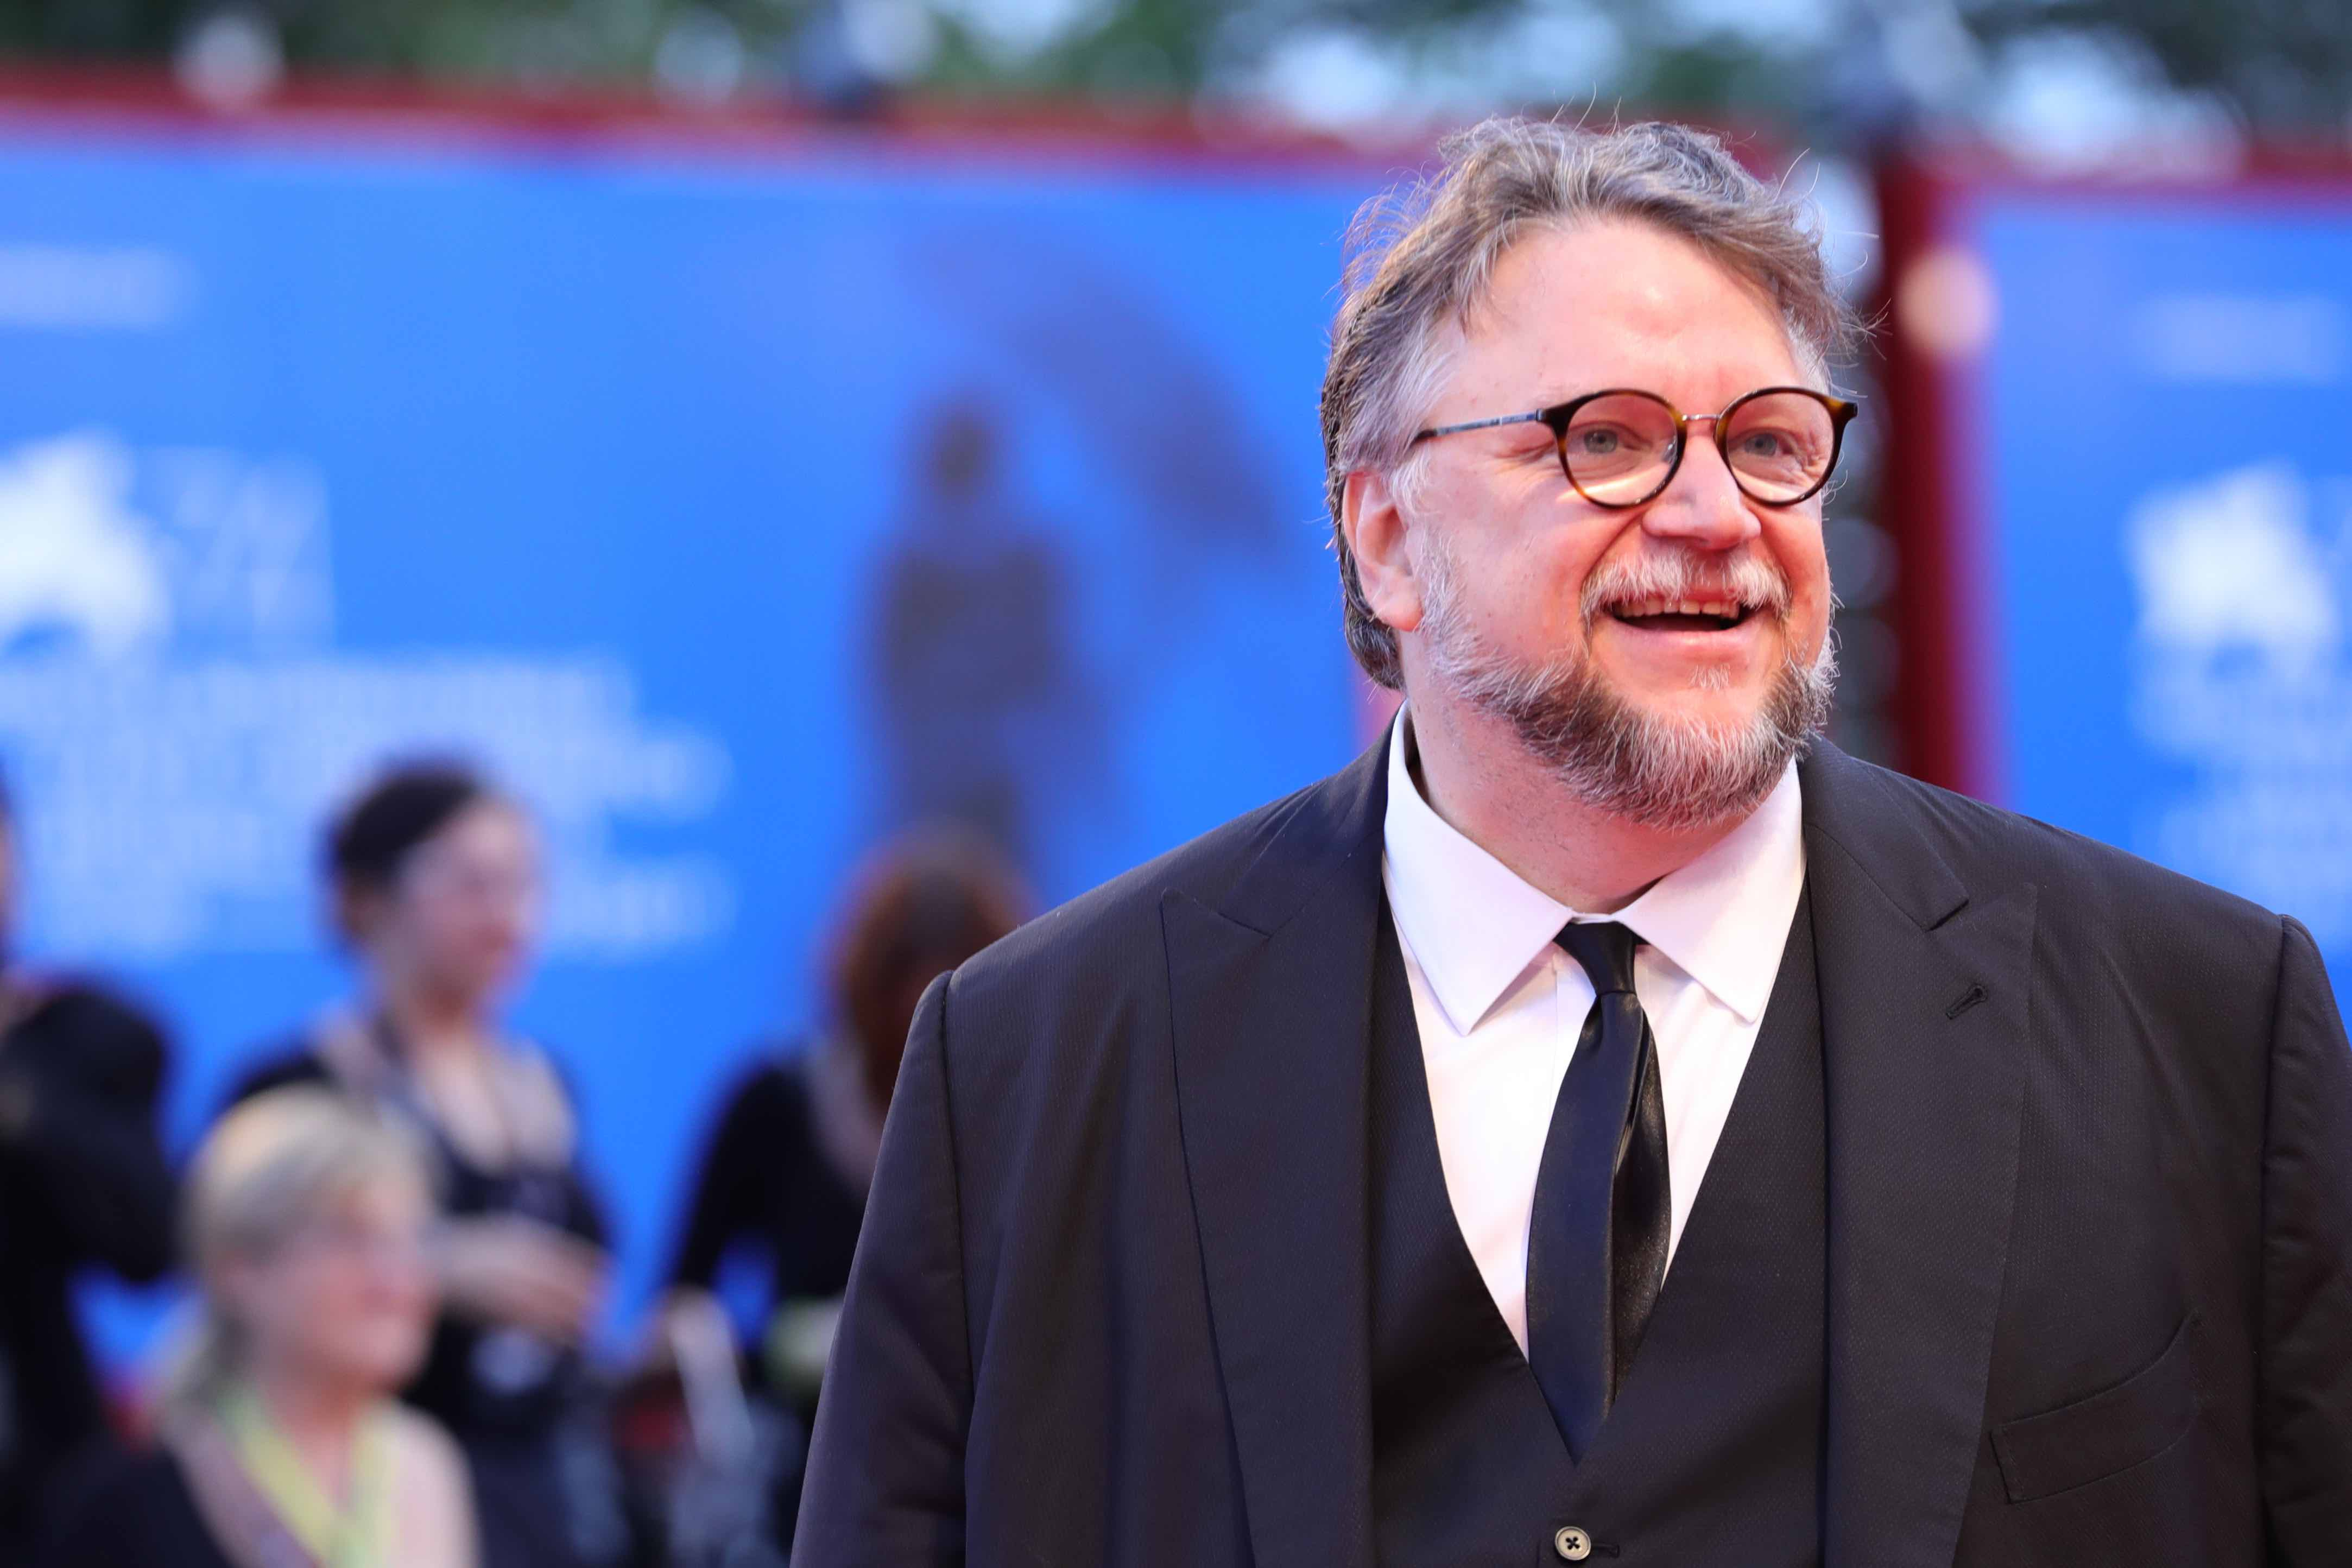 Guillermo del Toro's 'The Shape of Water' Hit with Plagiarism Lawsuit